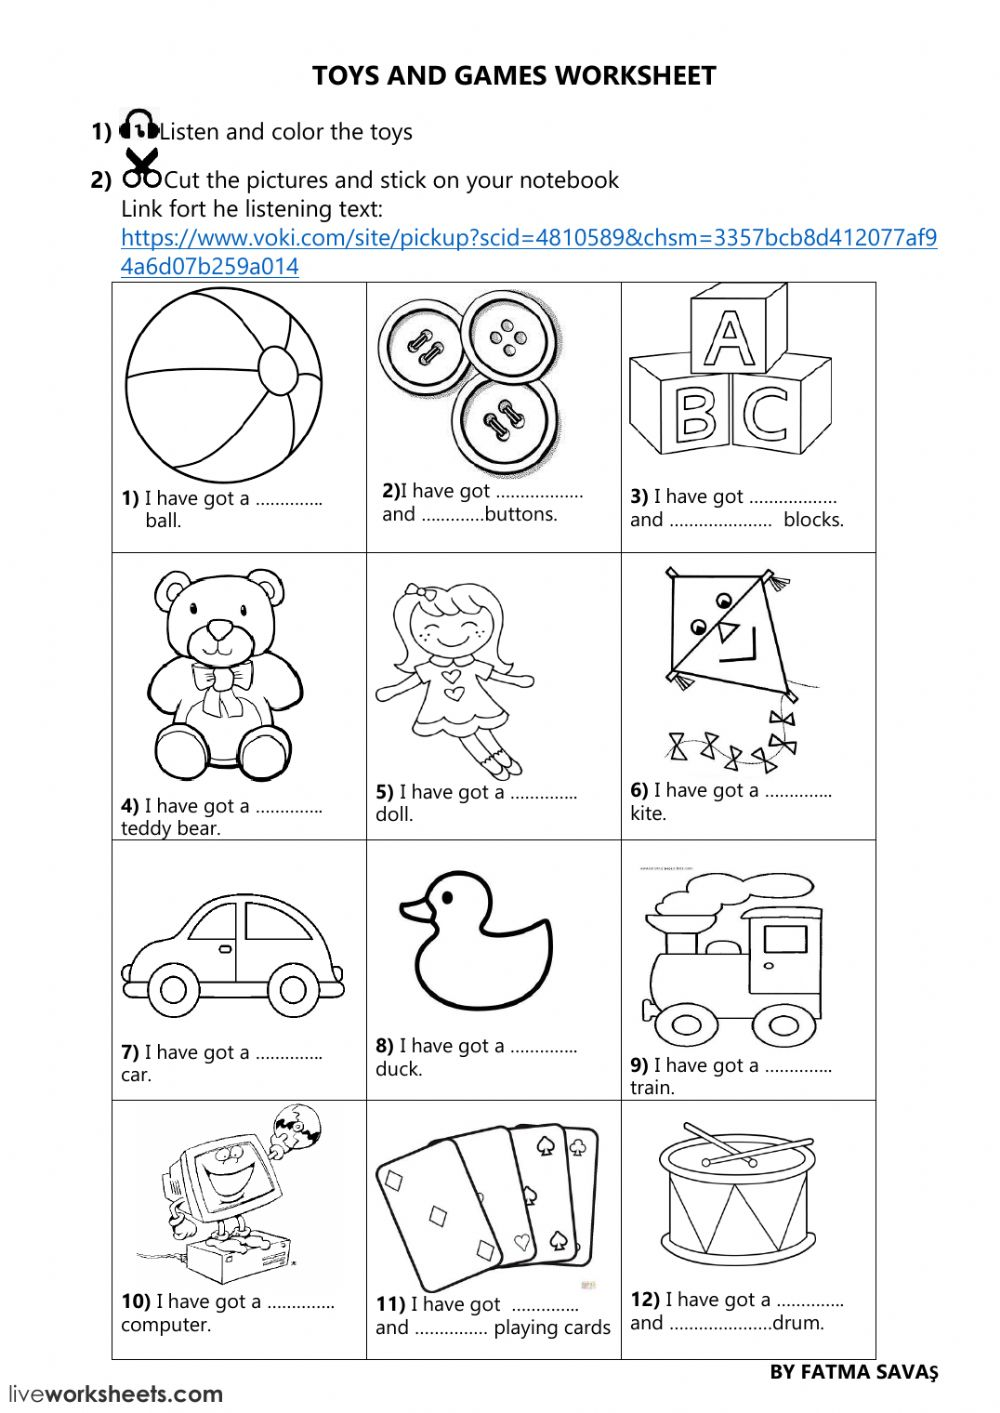 3rd grade unit 5 toys and games online worksheet - Interactive worksheet